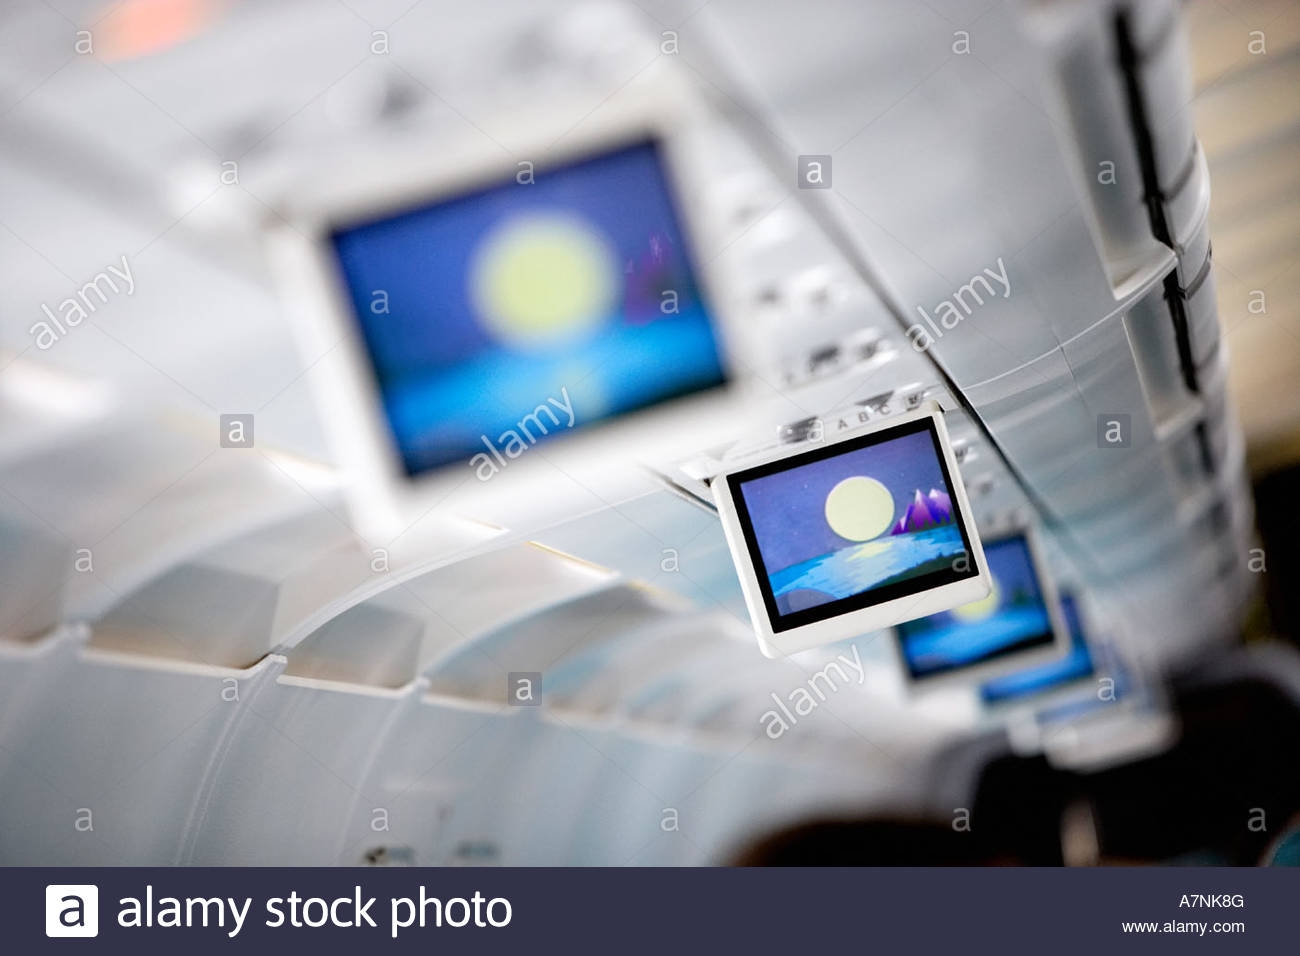 Row of blue visual screens in airplane cabin aisle differential focus - Stock Image